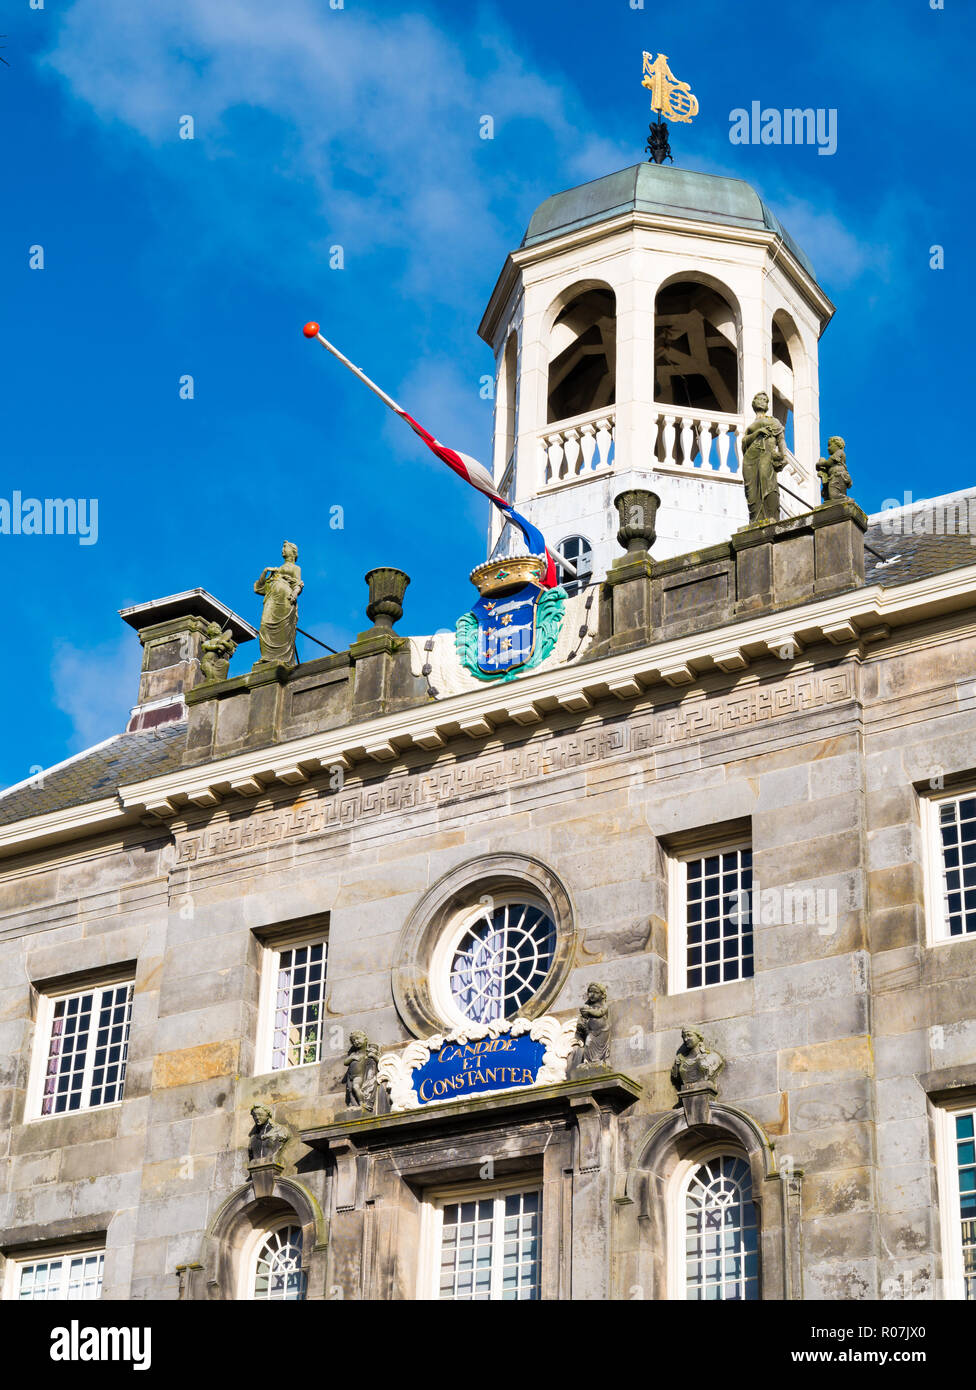 Top of historic town hall in old city centre of Enkhuizen, Noord-Holland, Netherlands - Stock Image